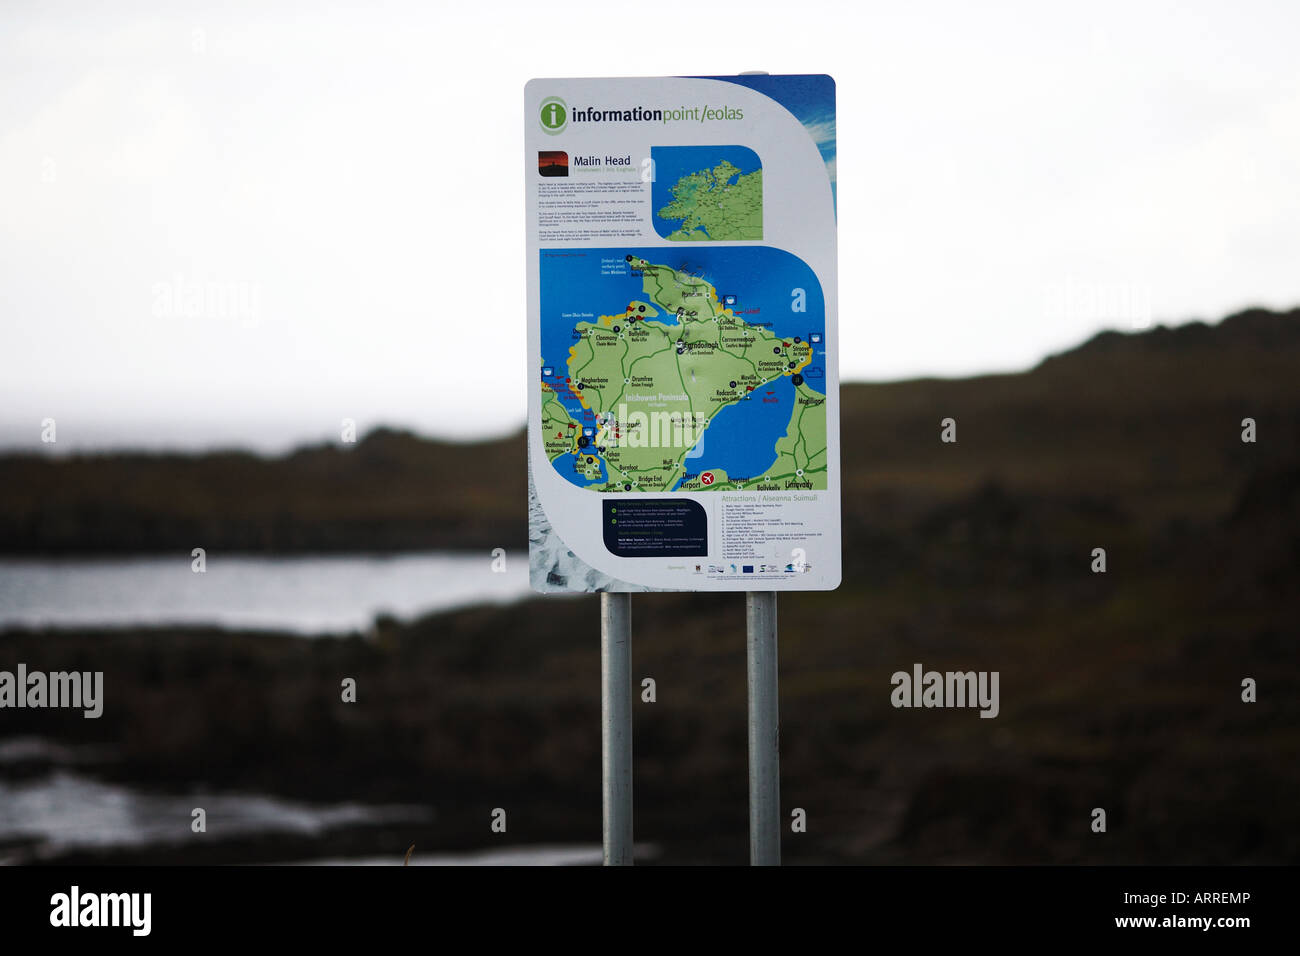 Map Of Republic Of Ireland Showing Counties.Inishowen Peninsula Map Post County Donegal Republic Of Ireland